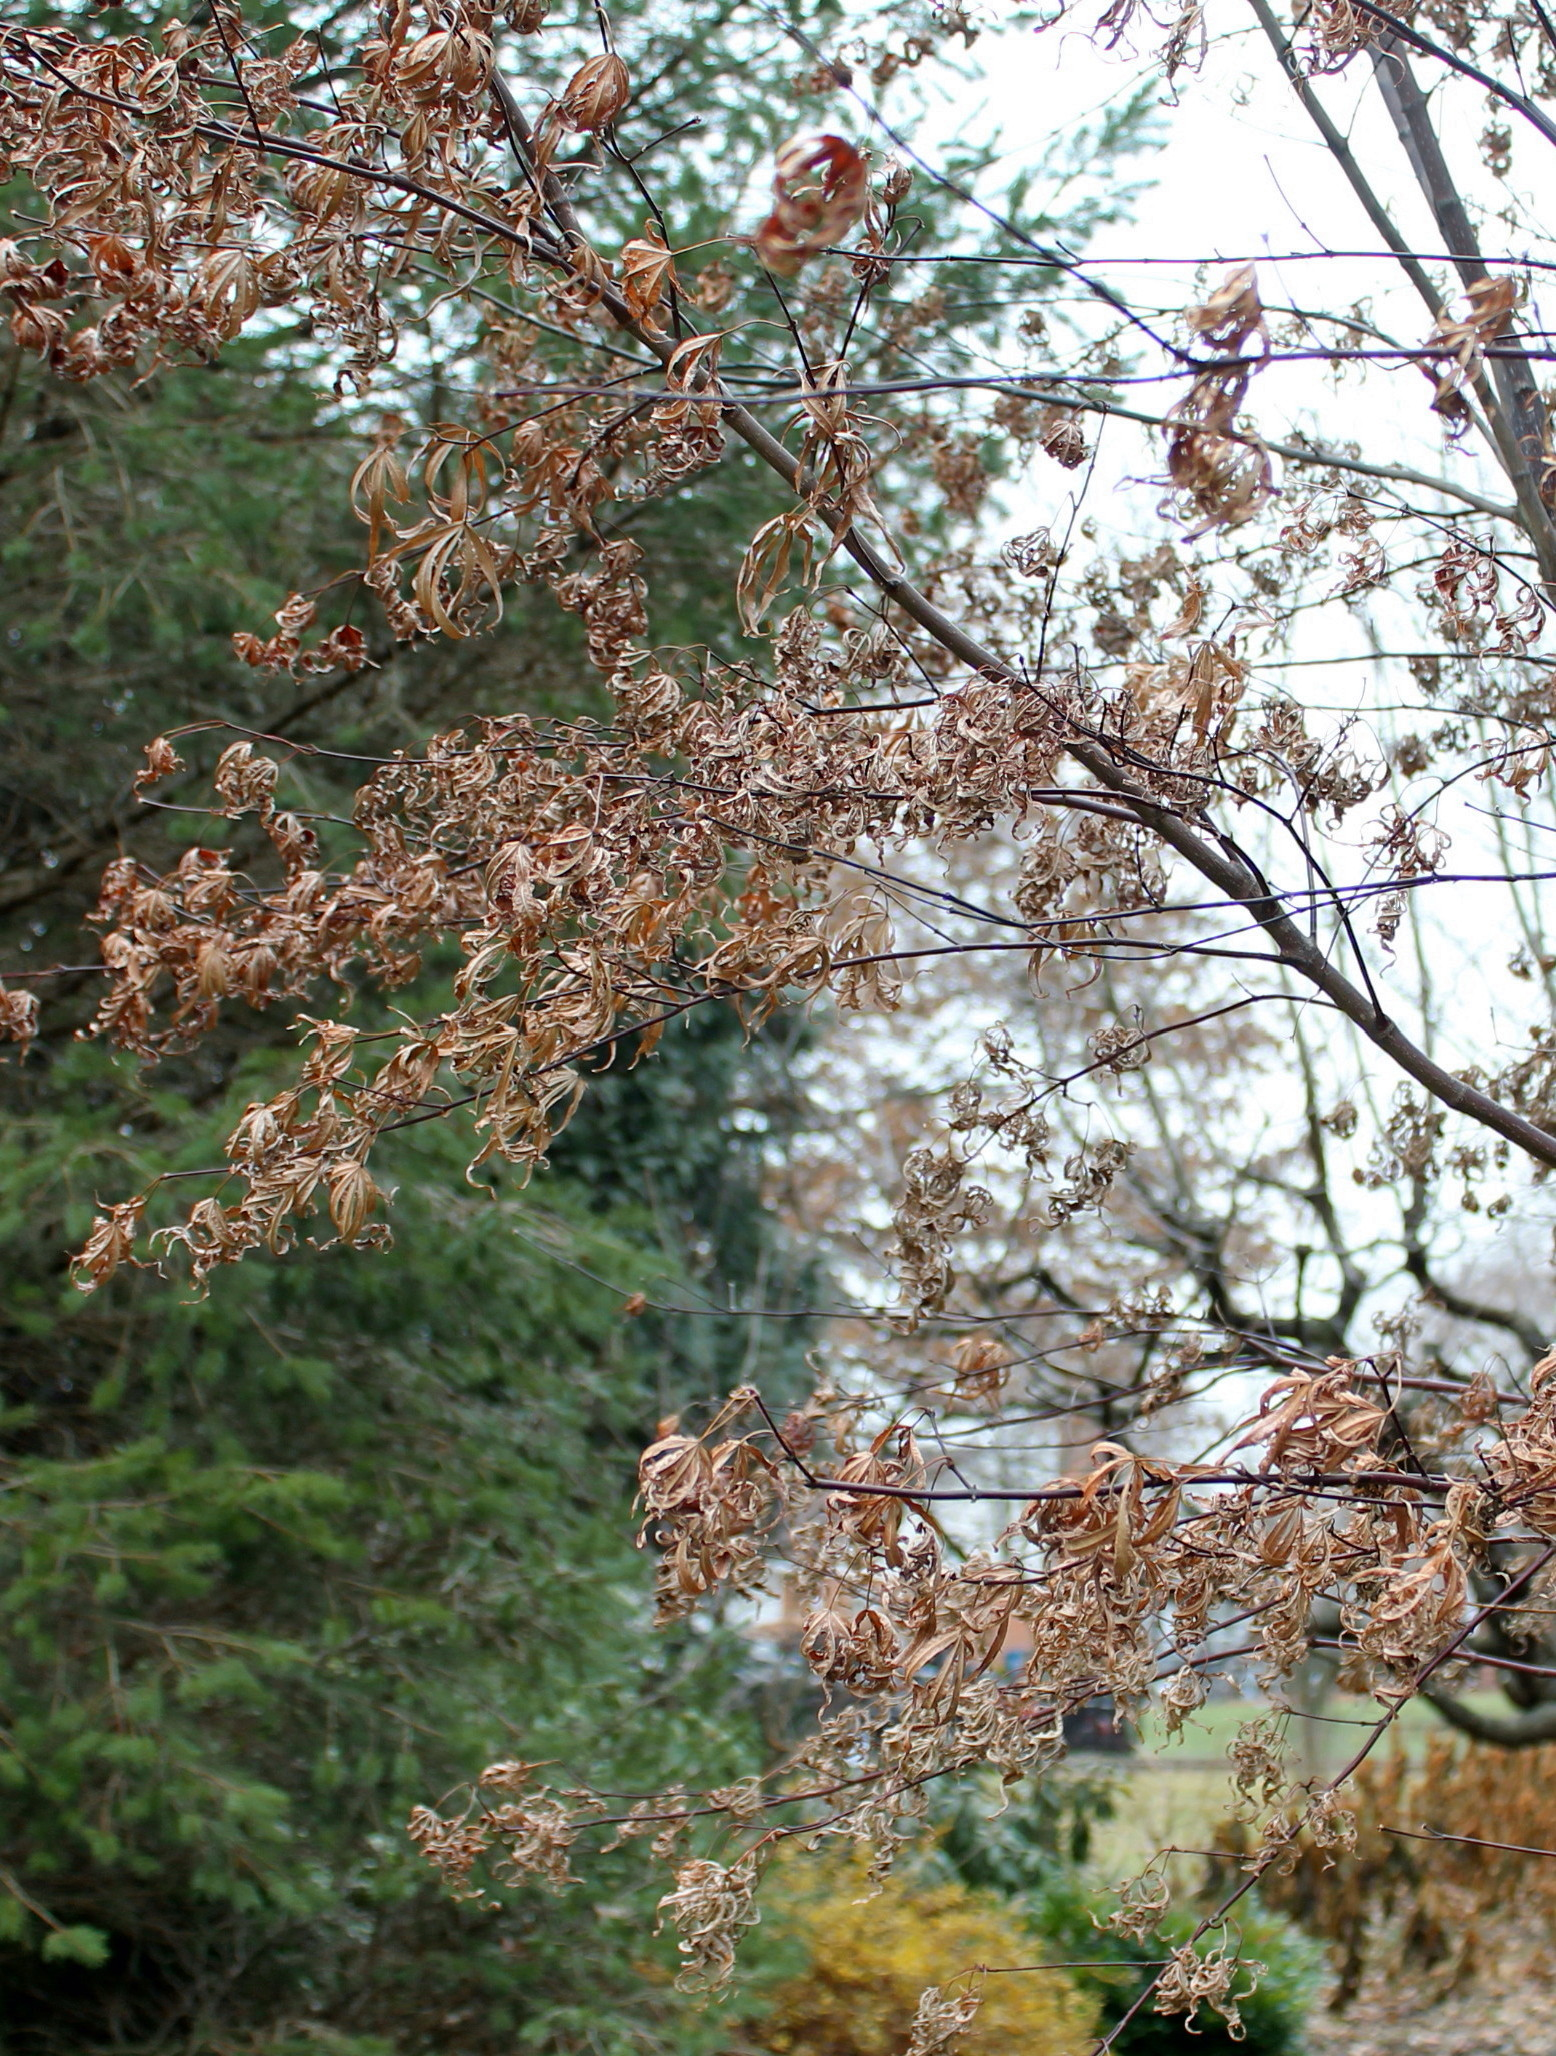 Garden Housecalls: Brown Spots On Japanese Maple Leaves